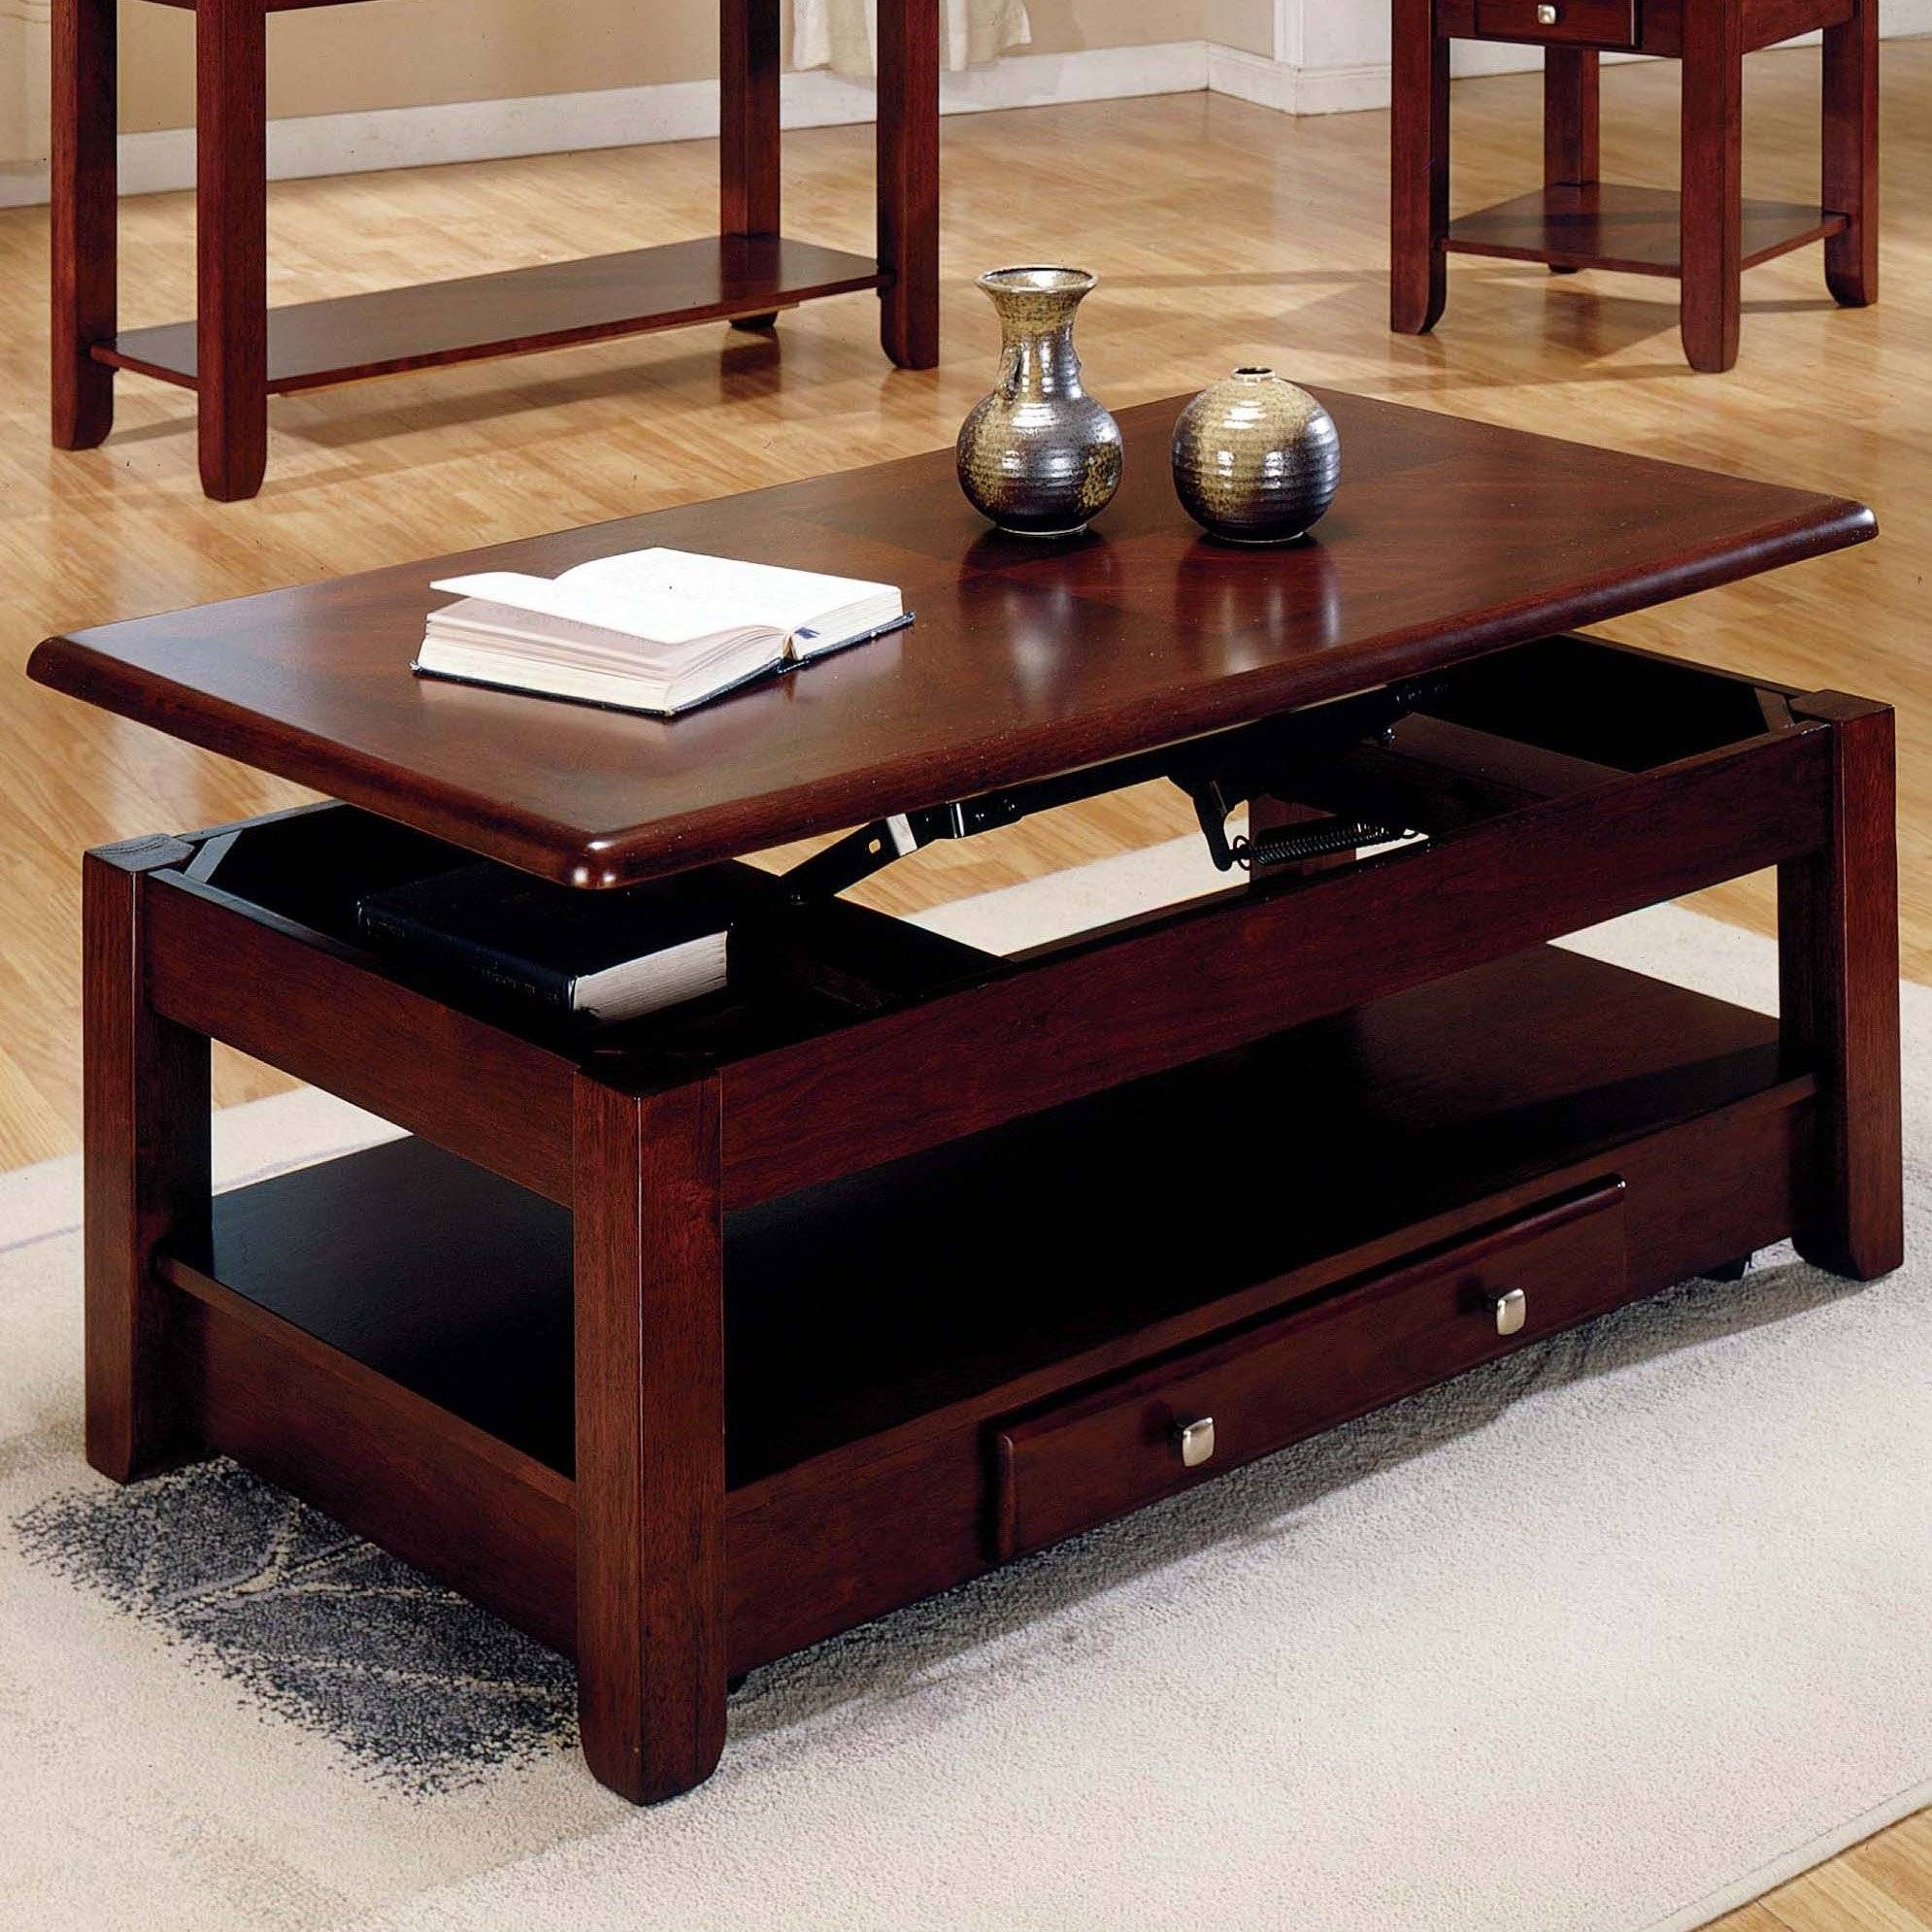 Coffee table that raises